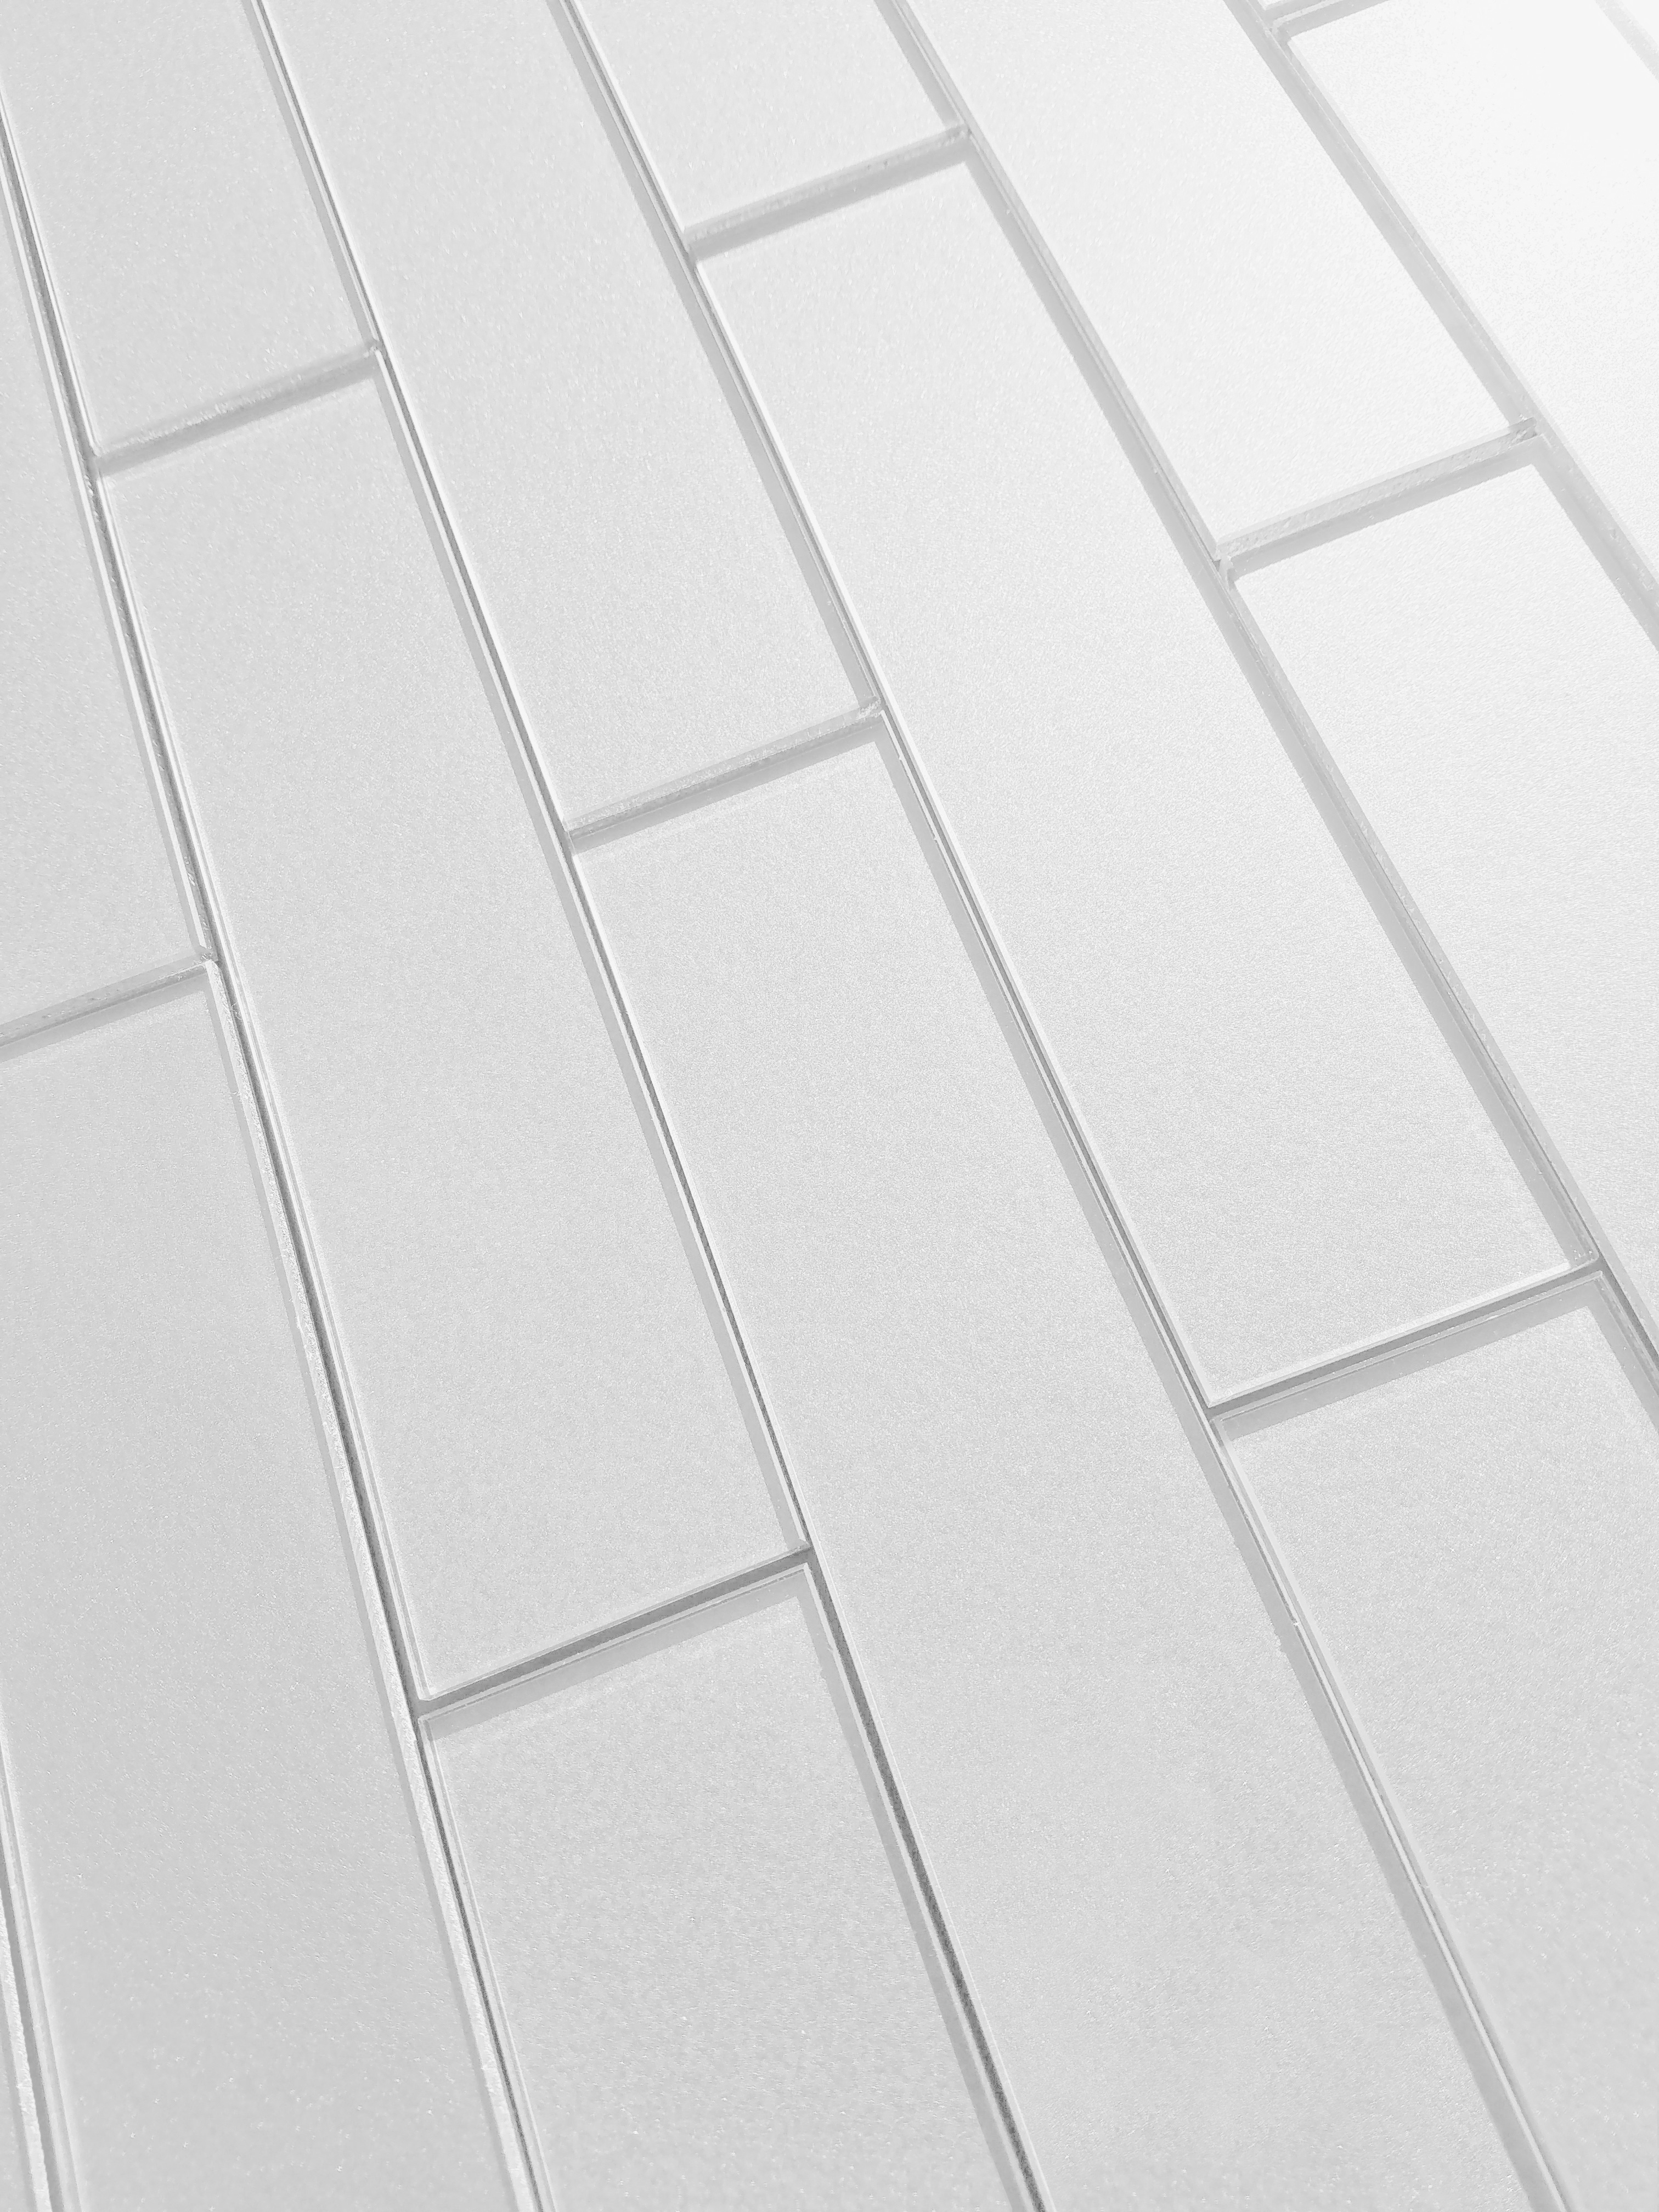 Forever 2 in x 8 in Glass Loose Tile in ETERNAL WHITE Glossy Straight